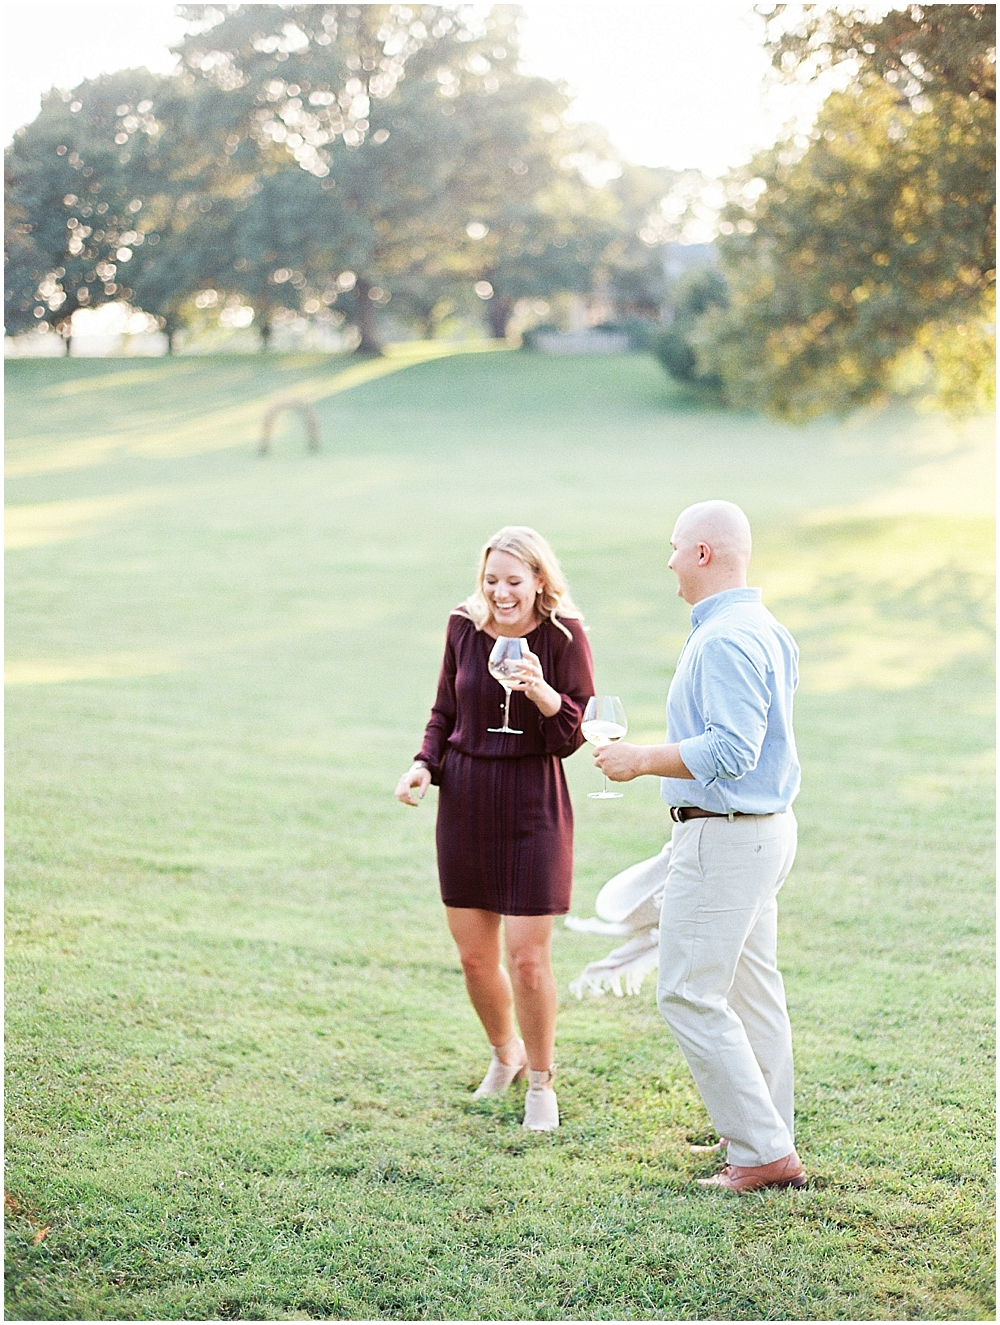 Joyful couple in St Louis - Engagement Session